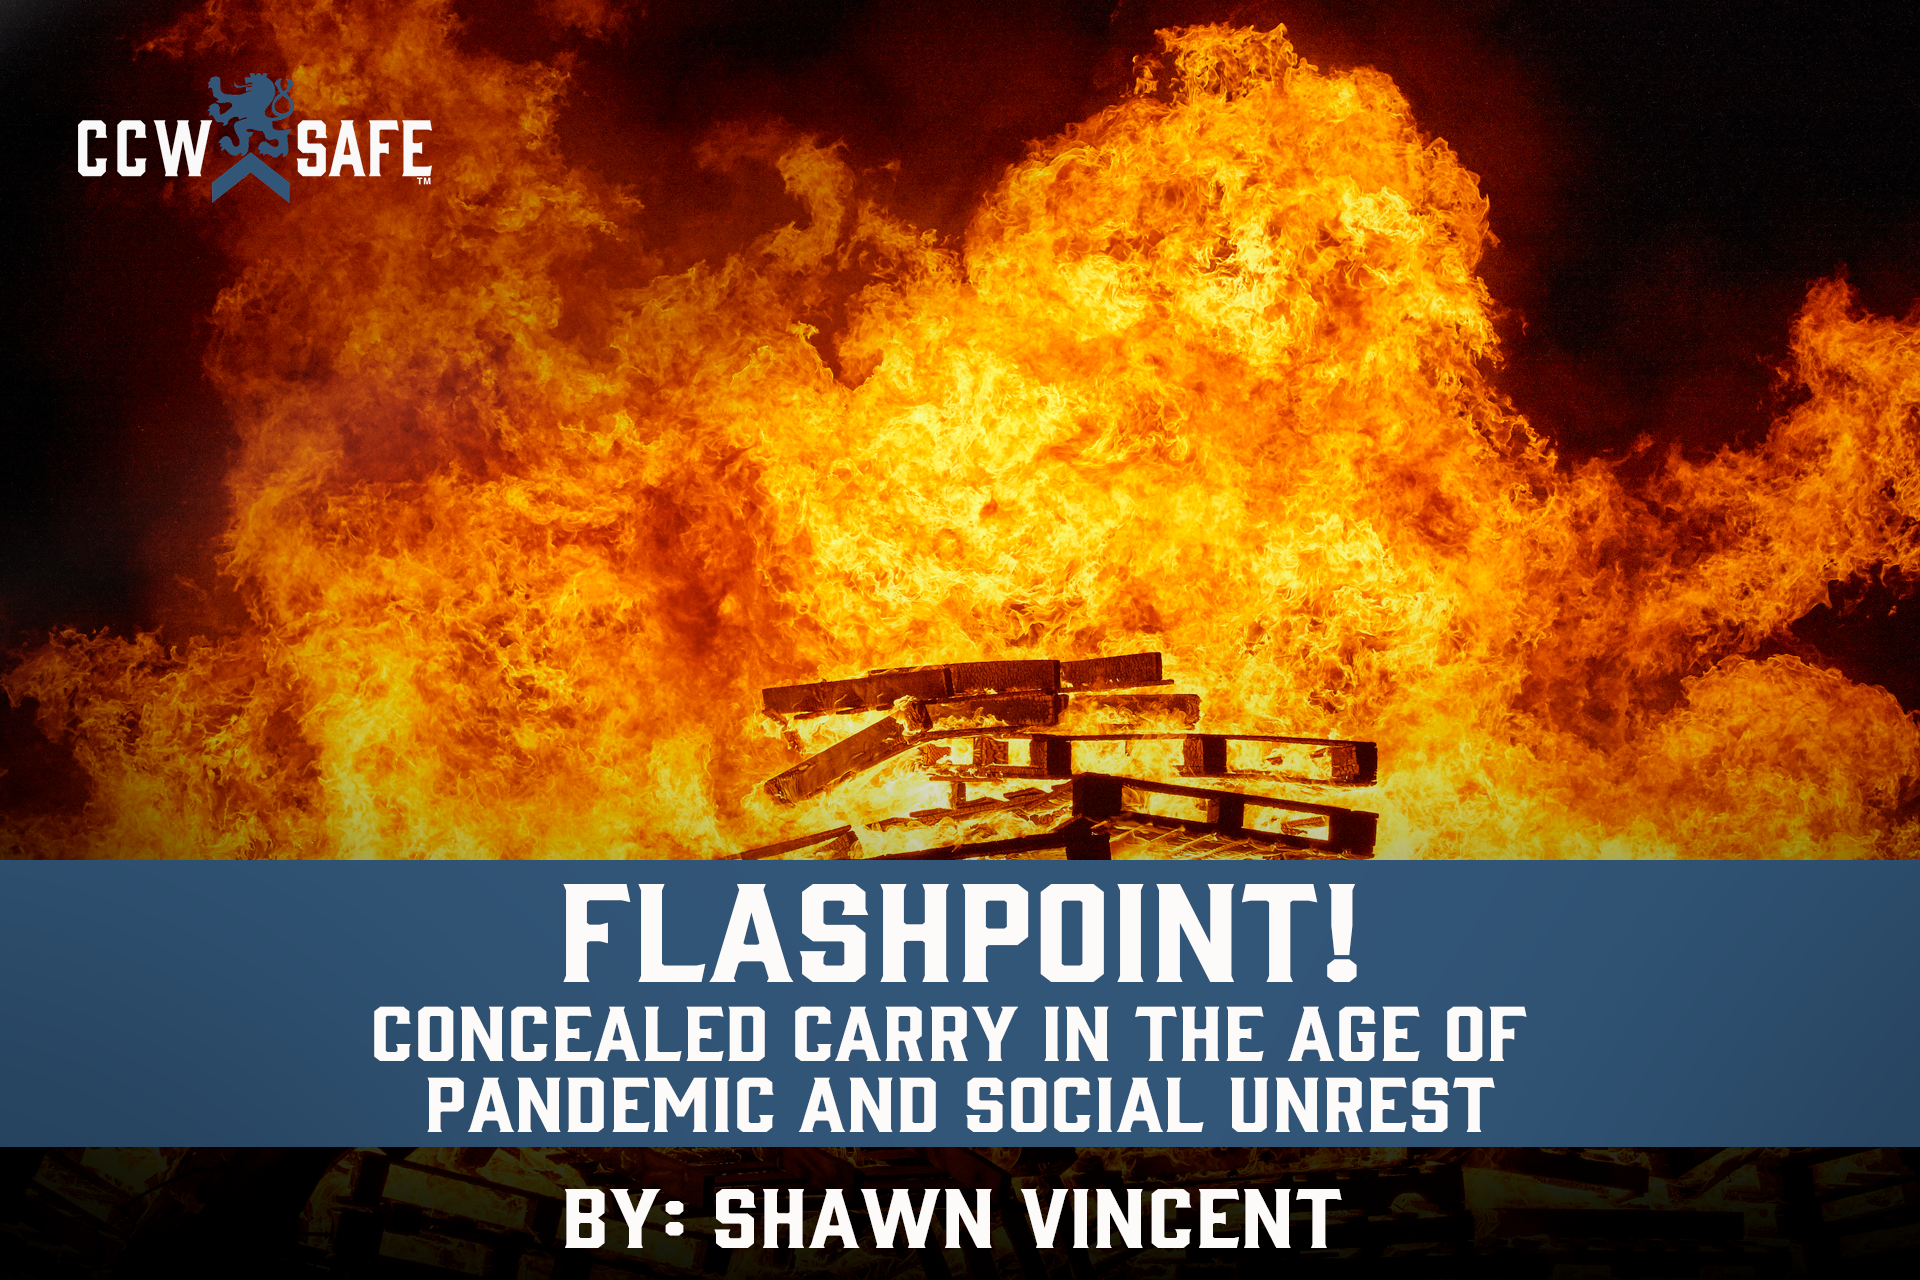 Flashpoint! Concealed carry in the age of pandemic and social unrest